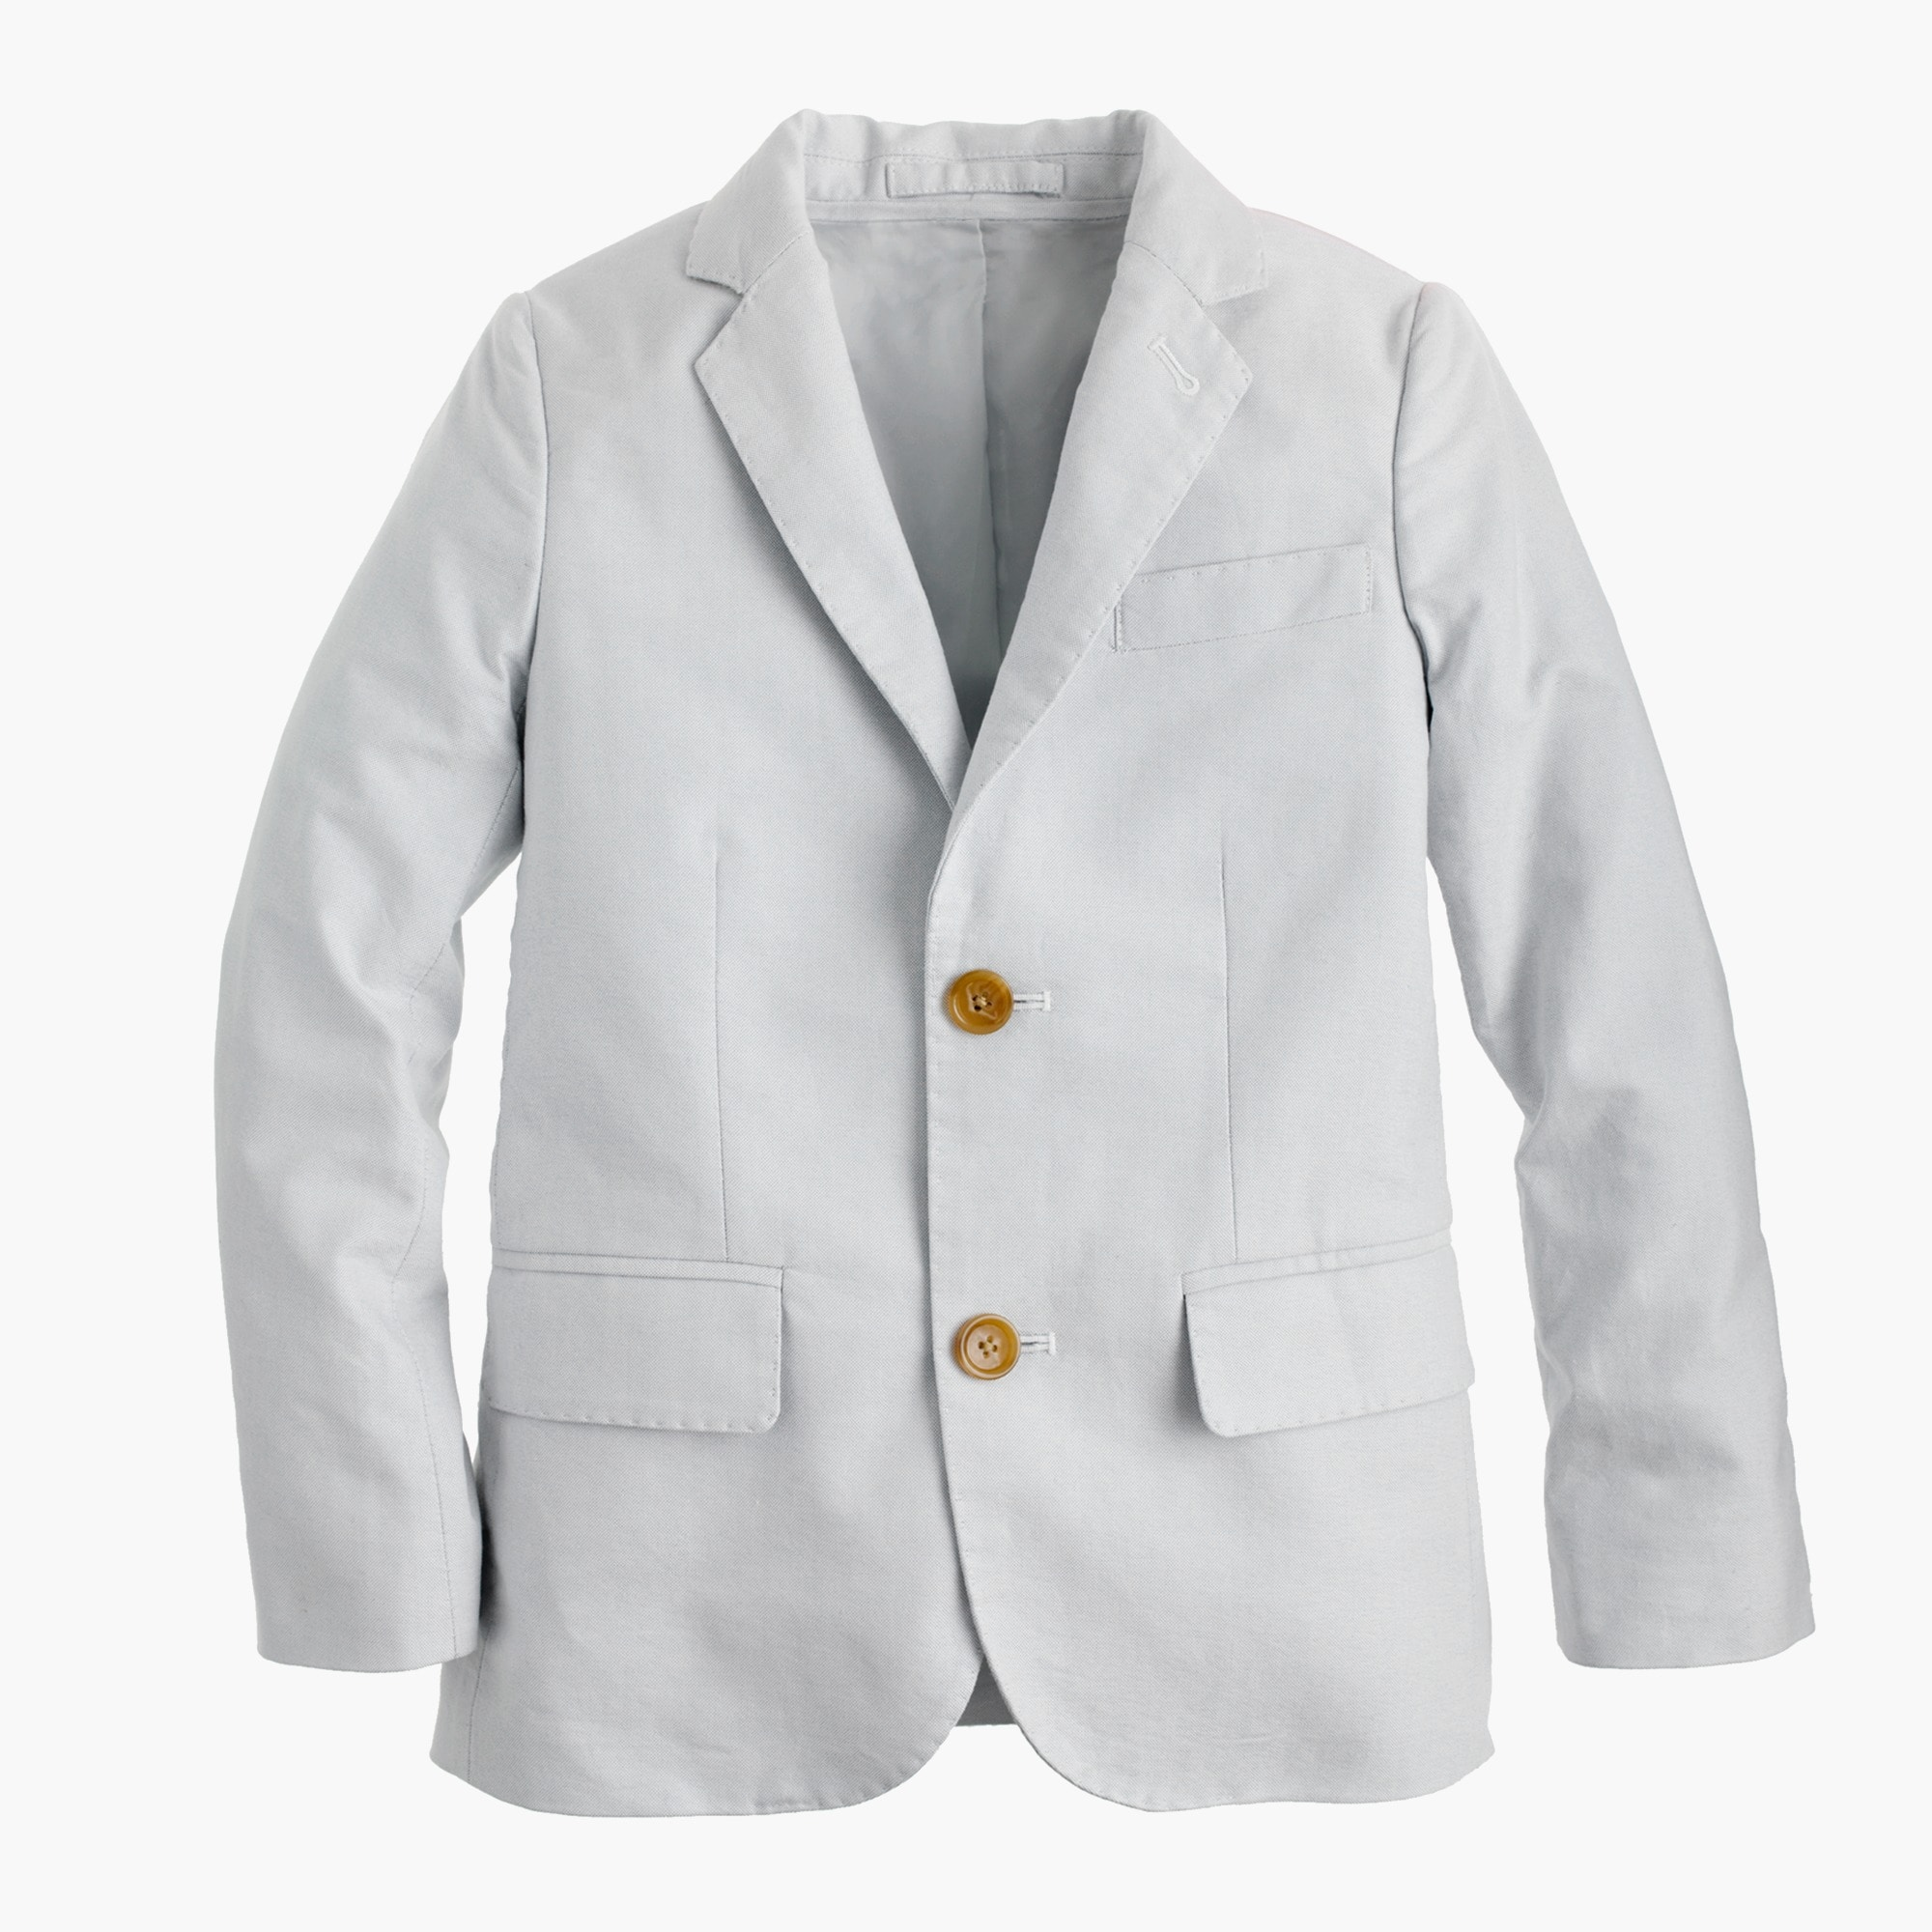 Image 3 for Boys' Ludlow suit jacket in oxford cloth